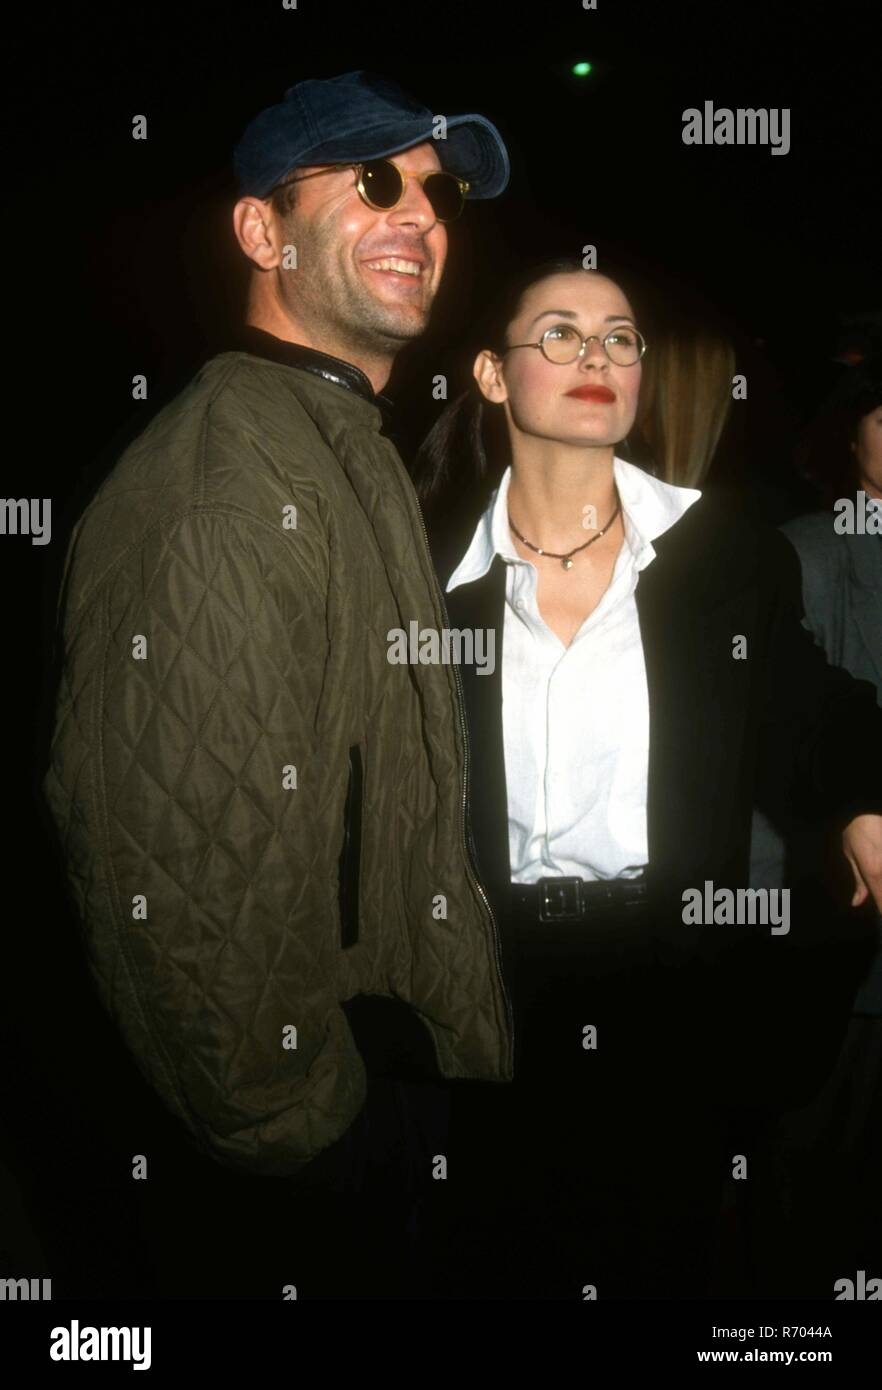 page 2 ghost demi moore high resolution stock photography and images alamy https www alamy com beverly hills ca april 6 actor bruce willis and actress demi moore attend the indecent proposal premiere on april 6 1993 at the samuel goldwyn theatre in beverly hills california photo by barry kingalamy stock photo image228040634 html